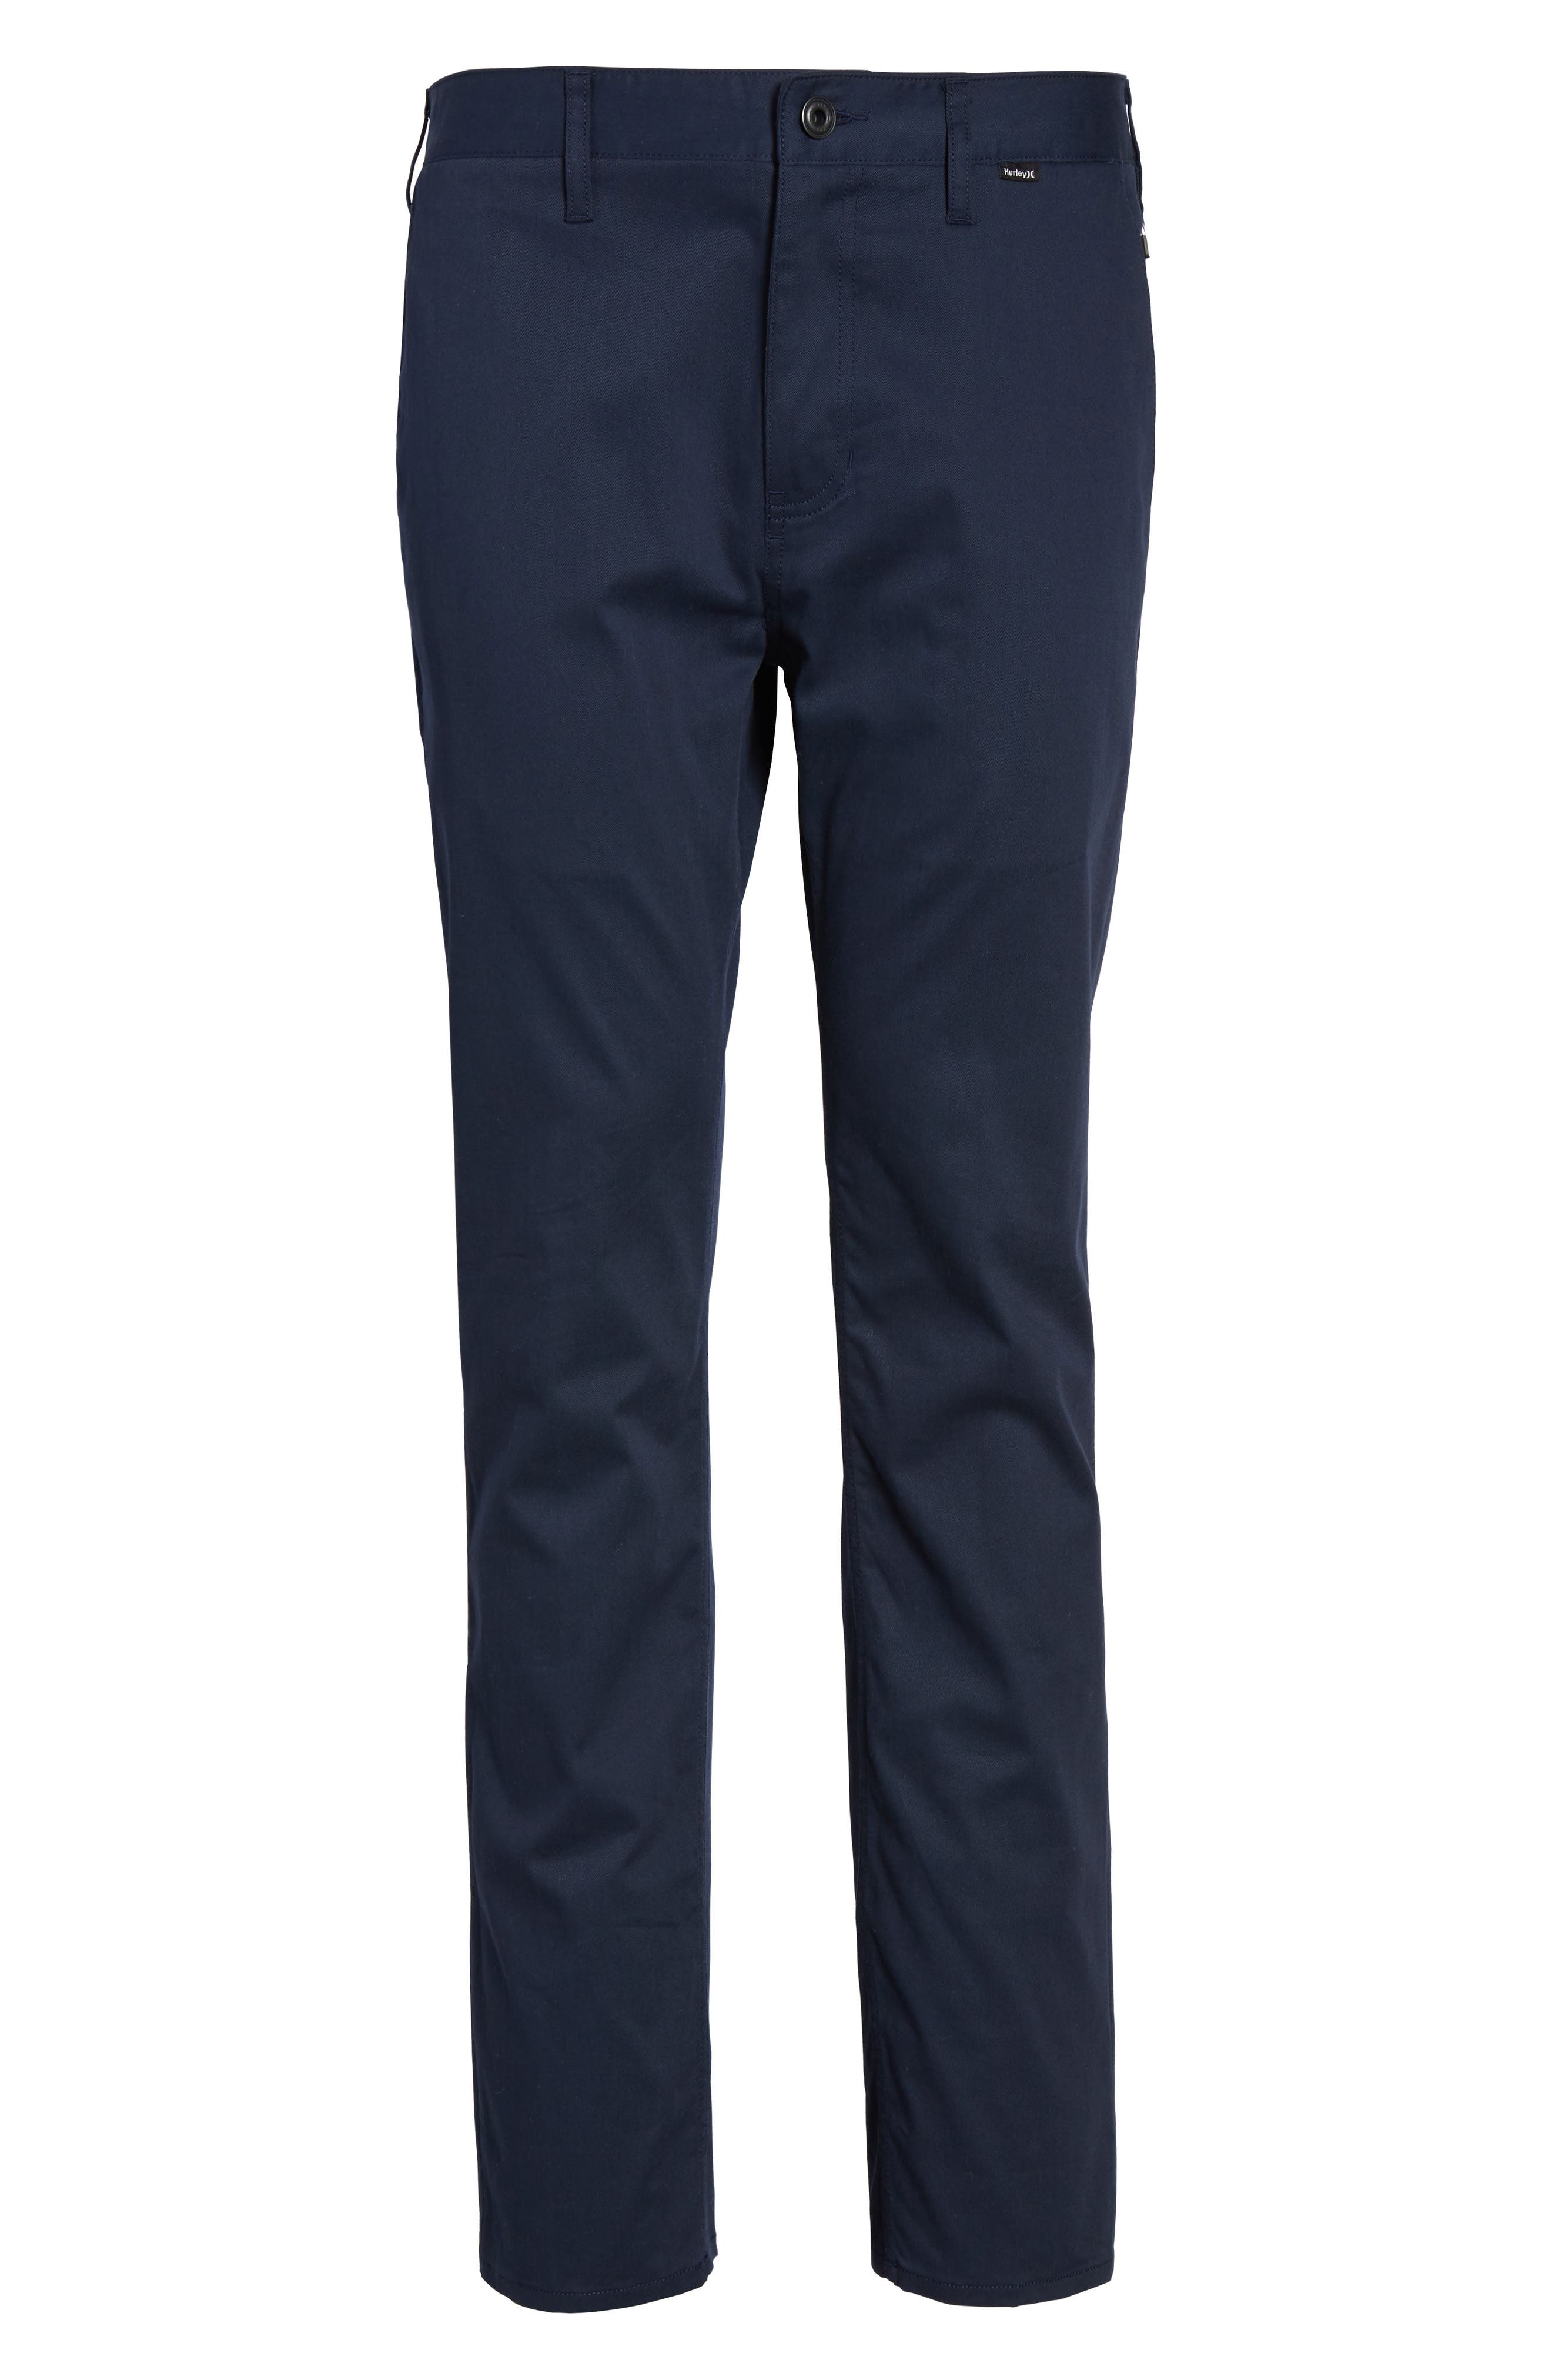 Dri-FIT Chinos,                             Alternate thumbnail 6, color,                             OBSIDIAN